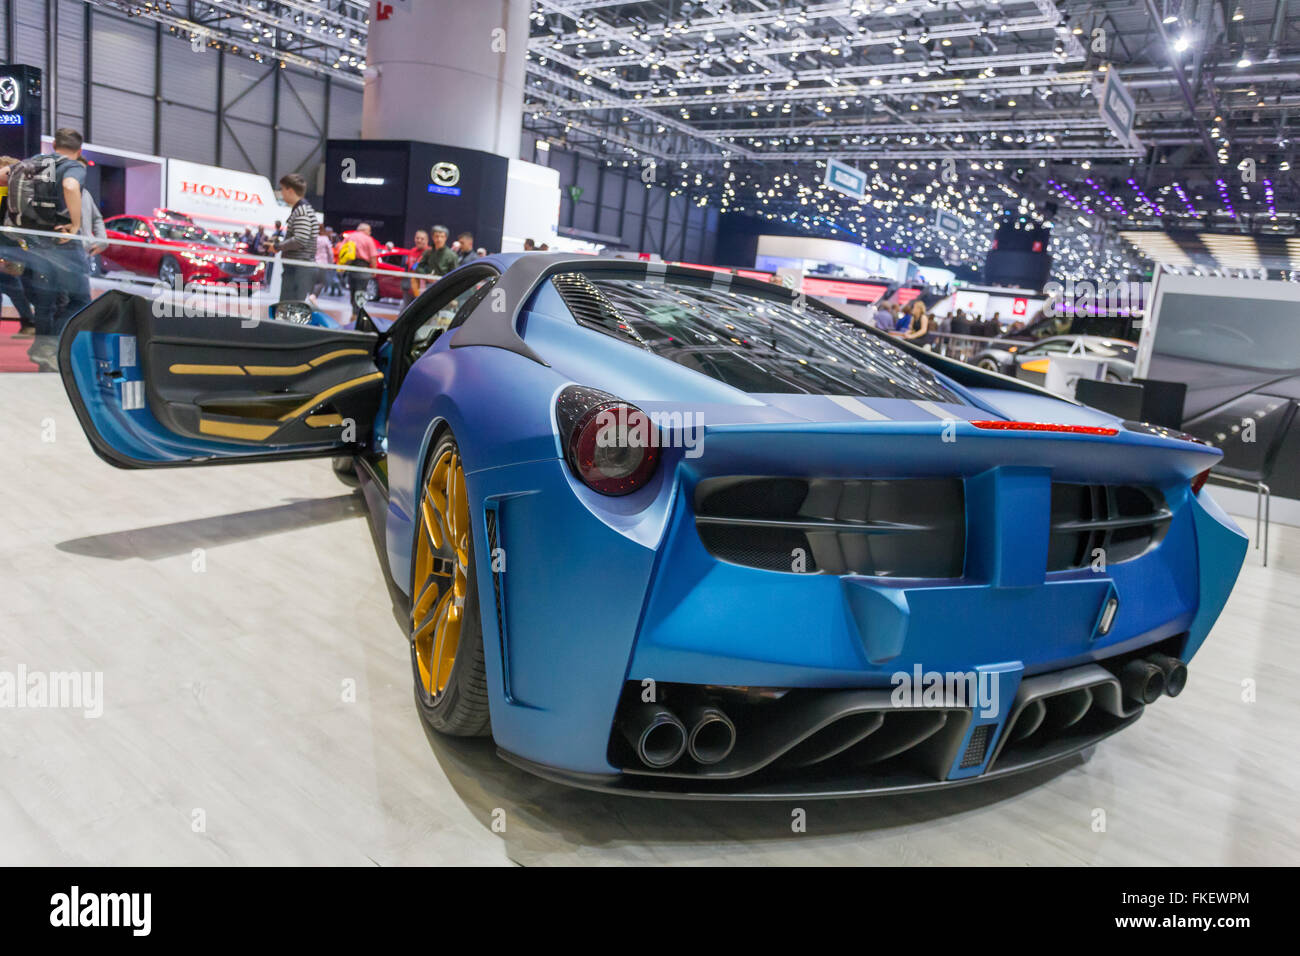 A ferrari at the 2016 automotive show in Geneva, Switzerland. Stock Photo